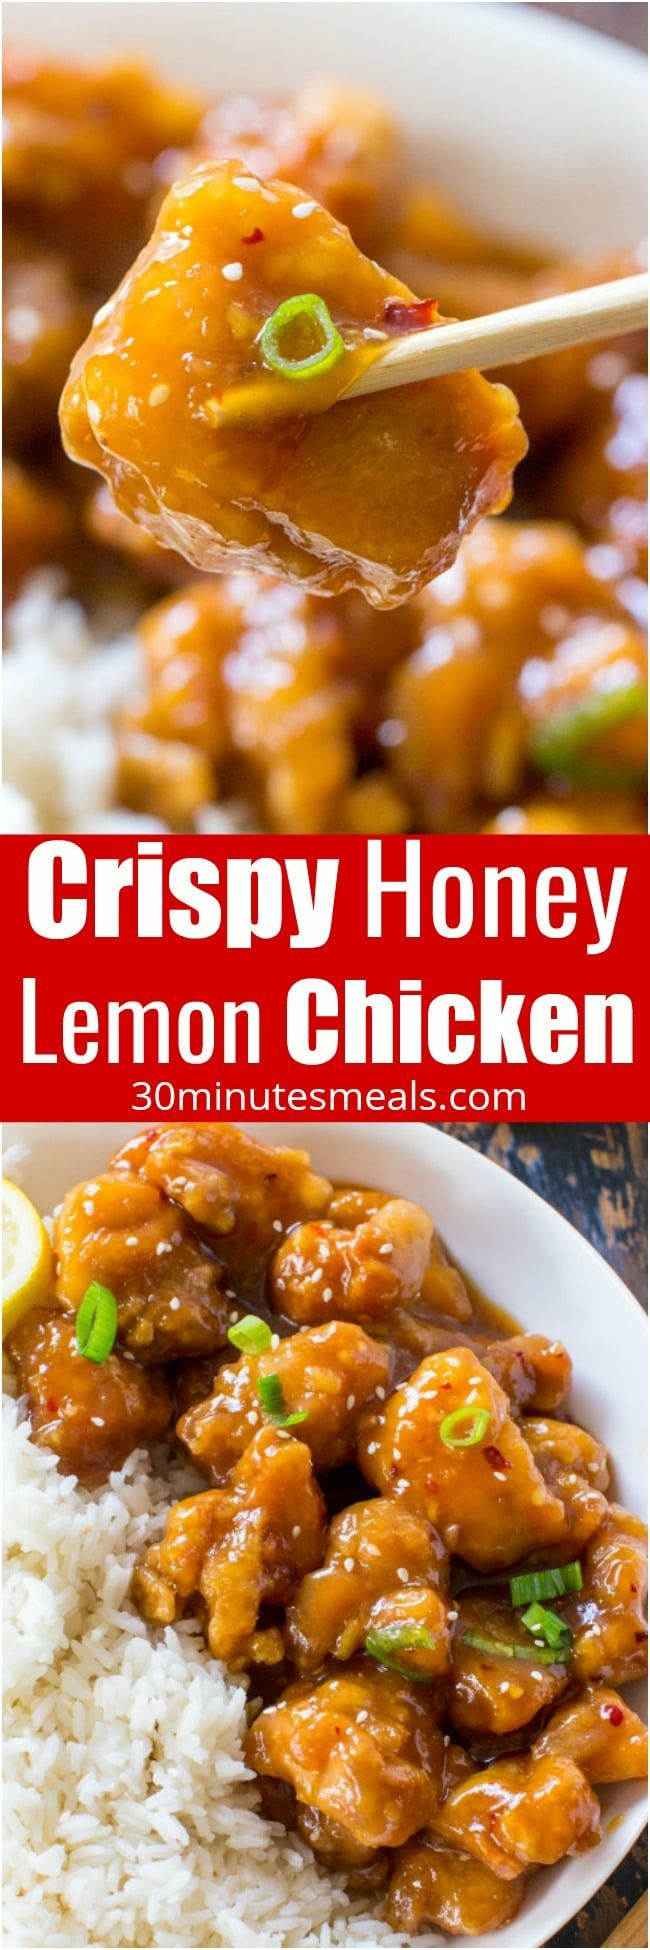 Crispy Honey Lemon Chicken is a restaurant quality meal, made easy at home in just 30 minutes in one pan! Crispy, sticky and full of honey lemon flavor.